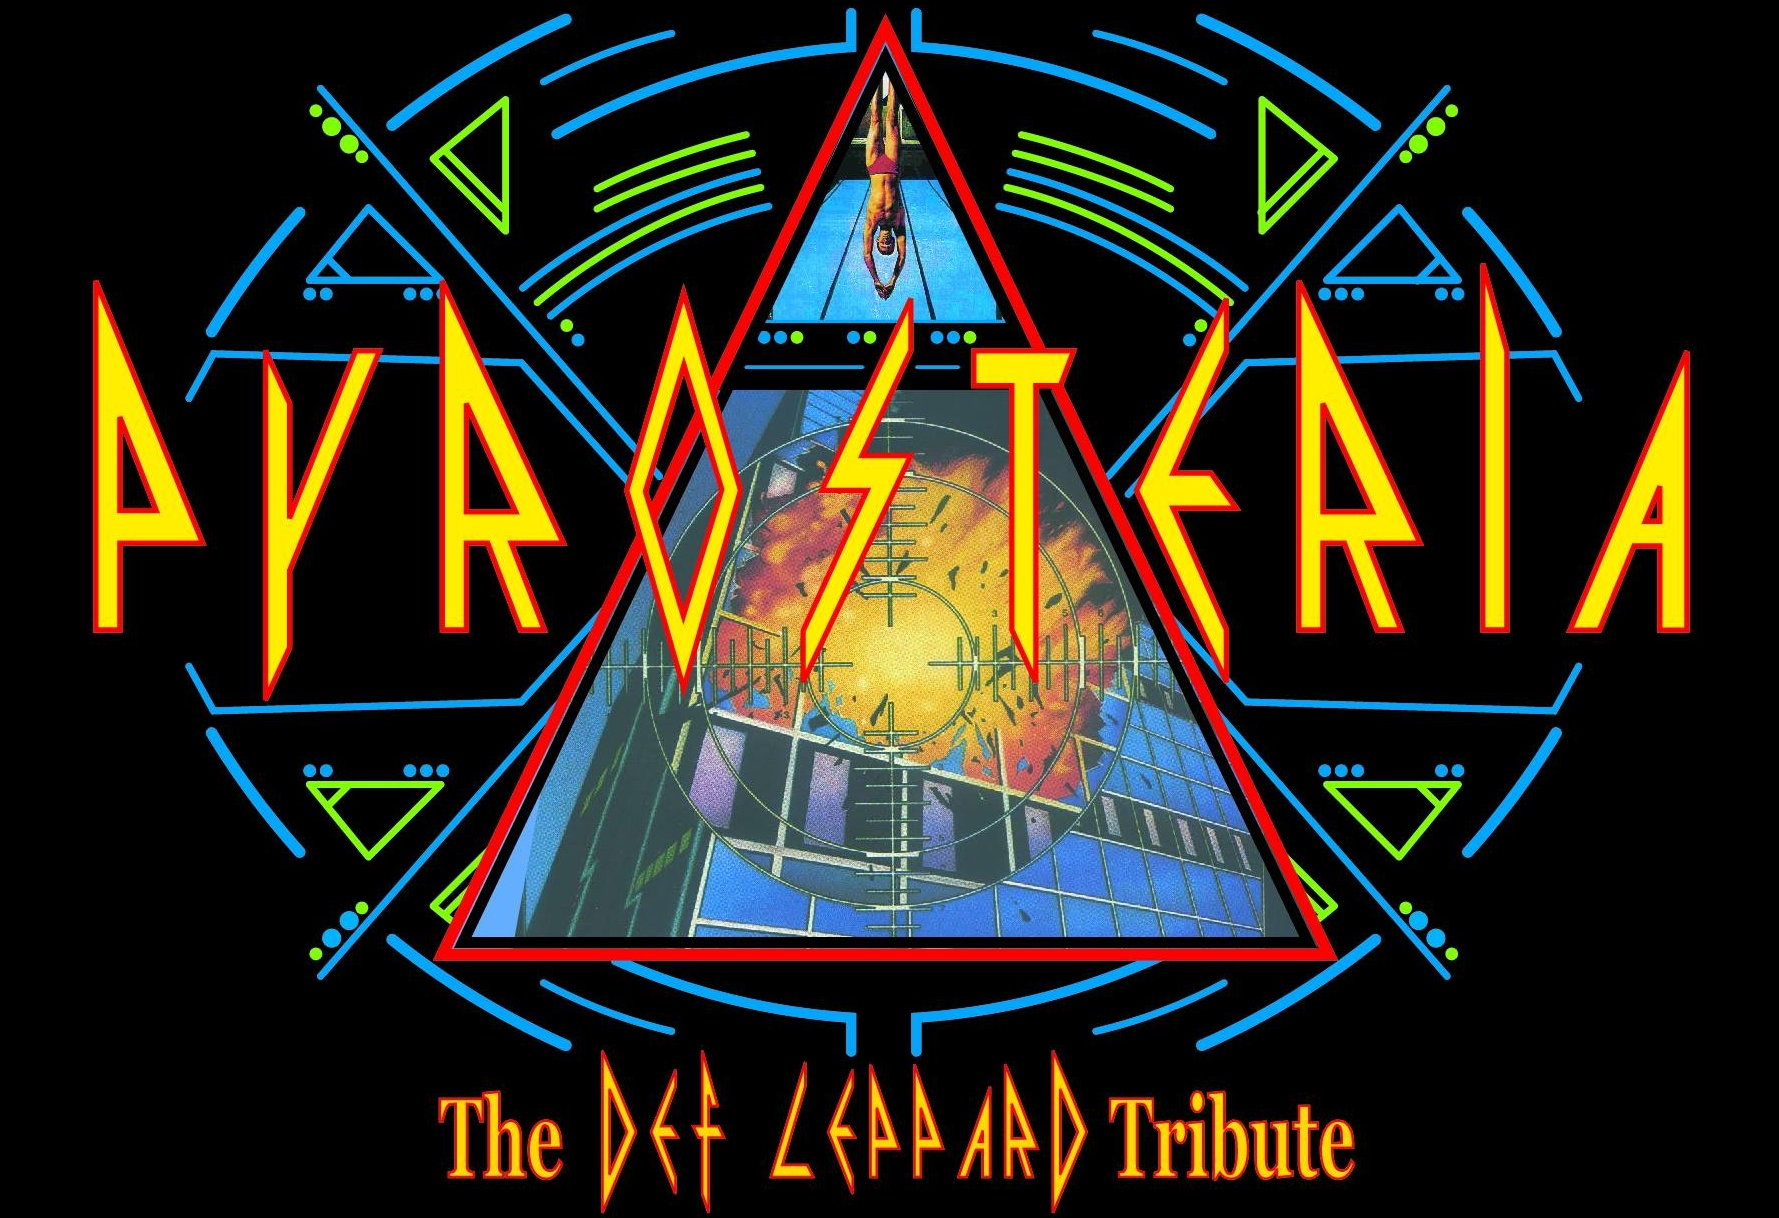 PYROSTERIA - The Def Leppard Tribute